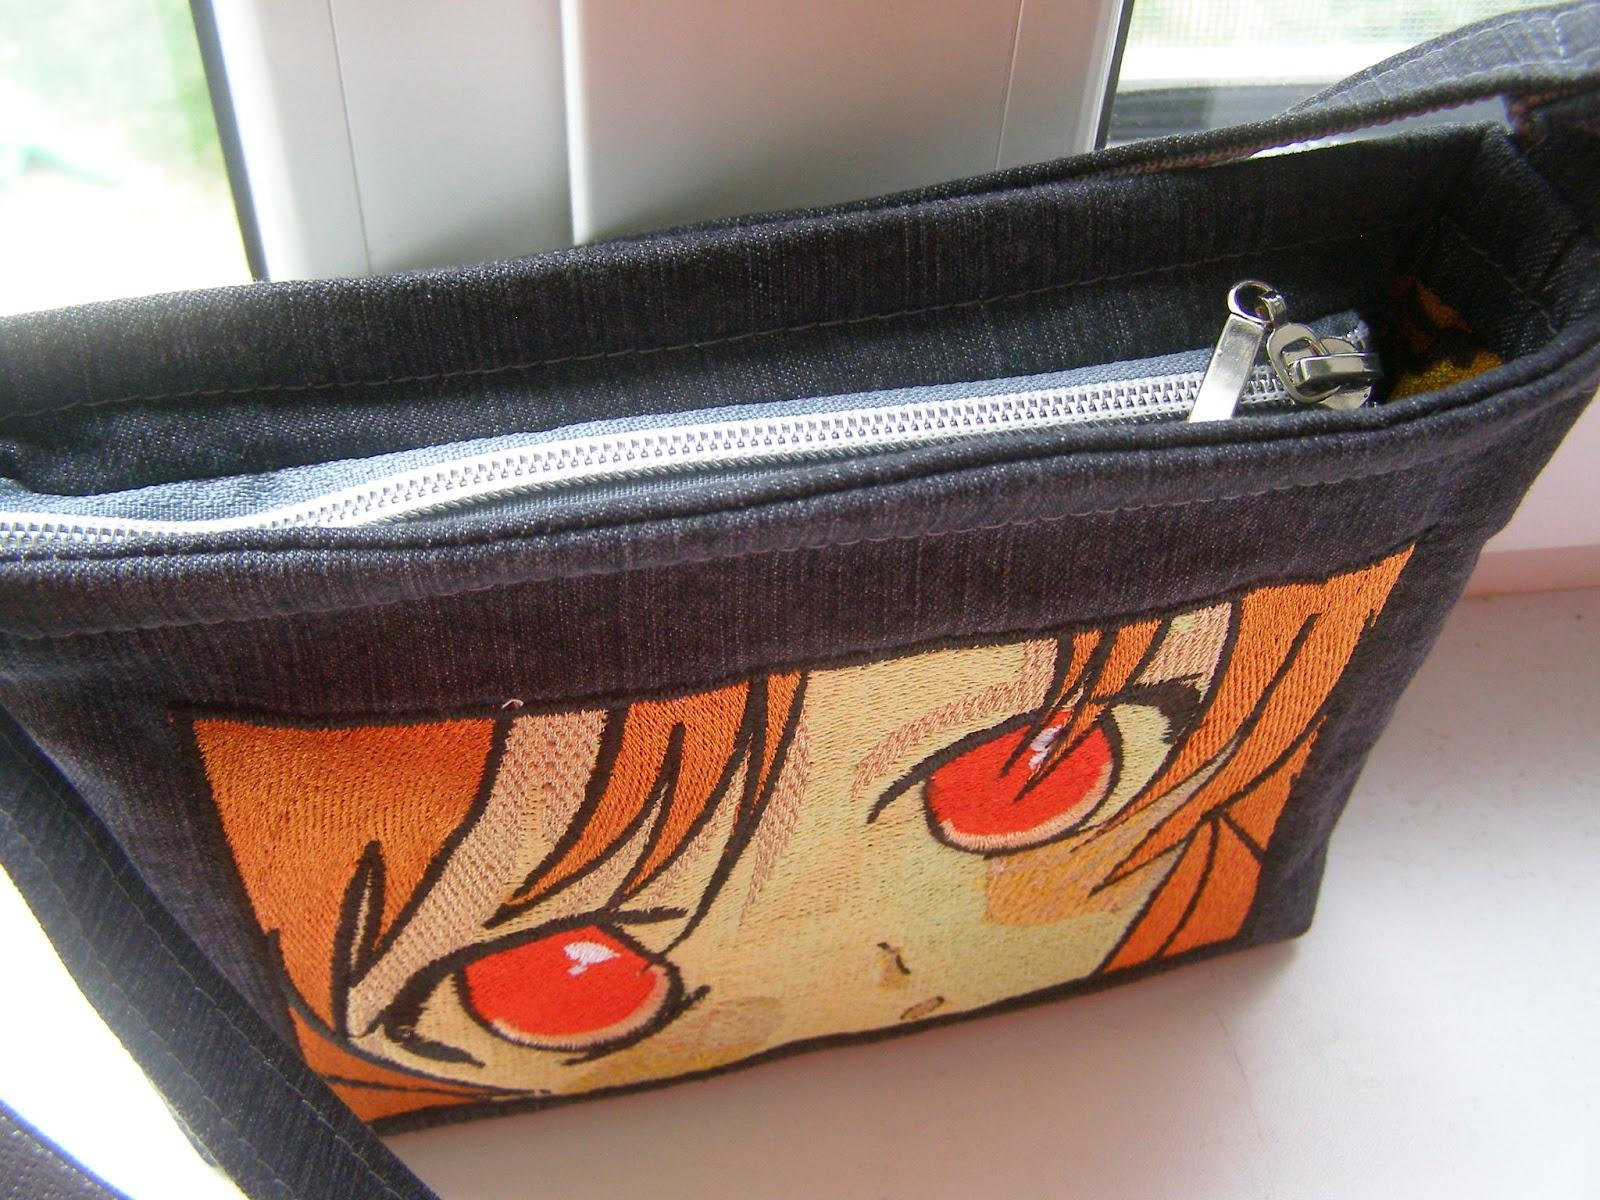 Embroidered bag with Anime look design